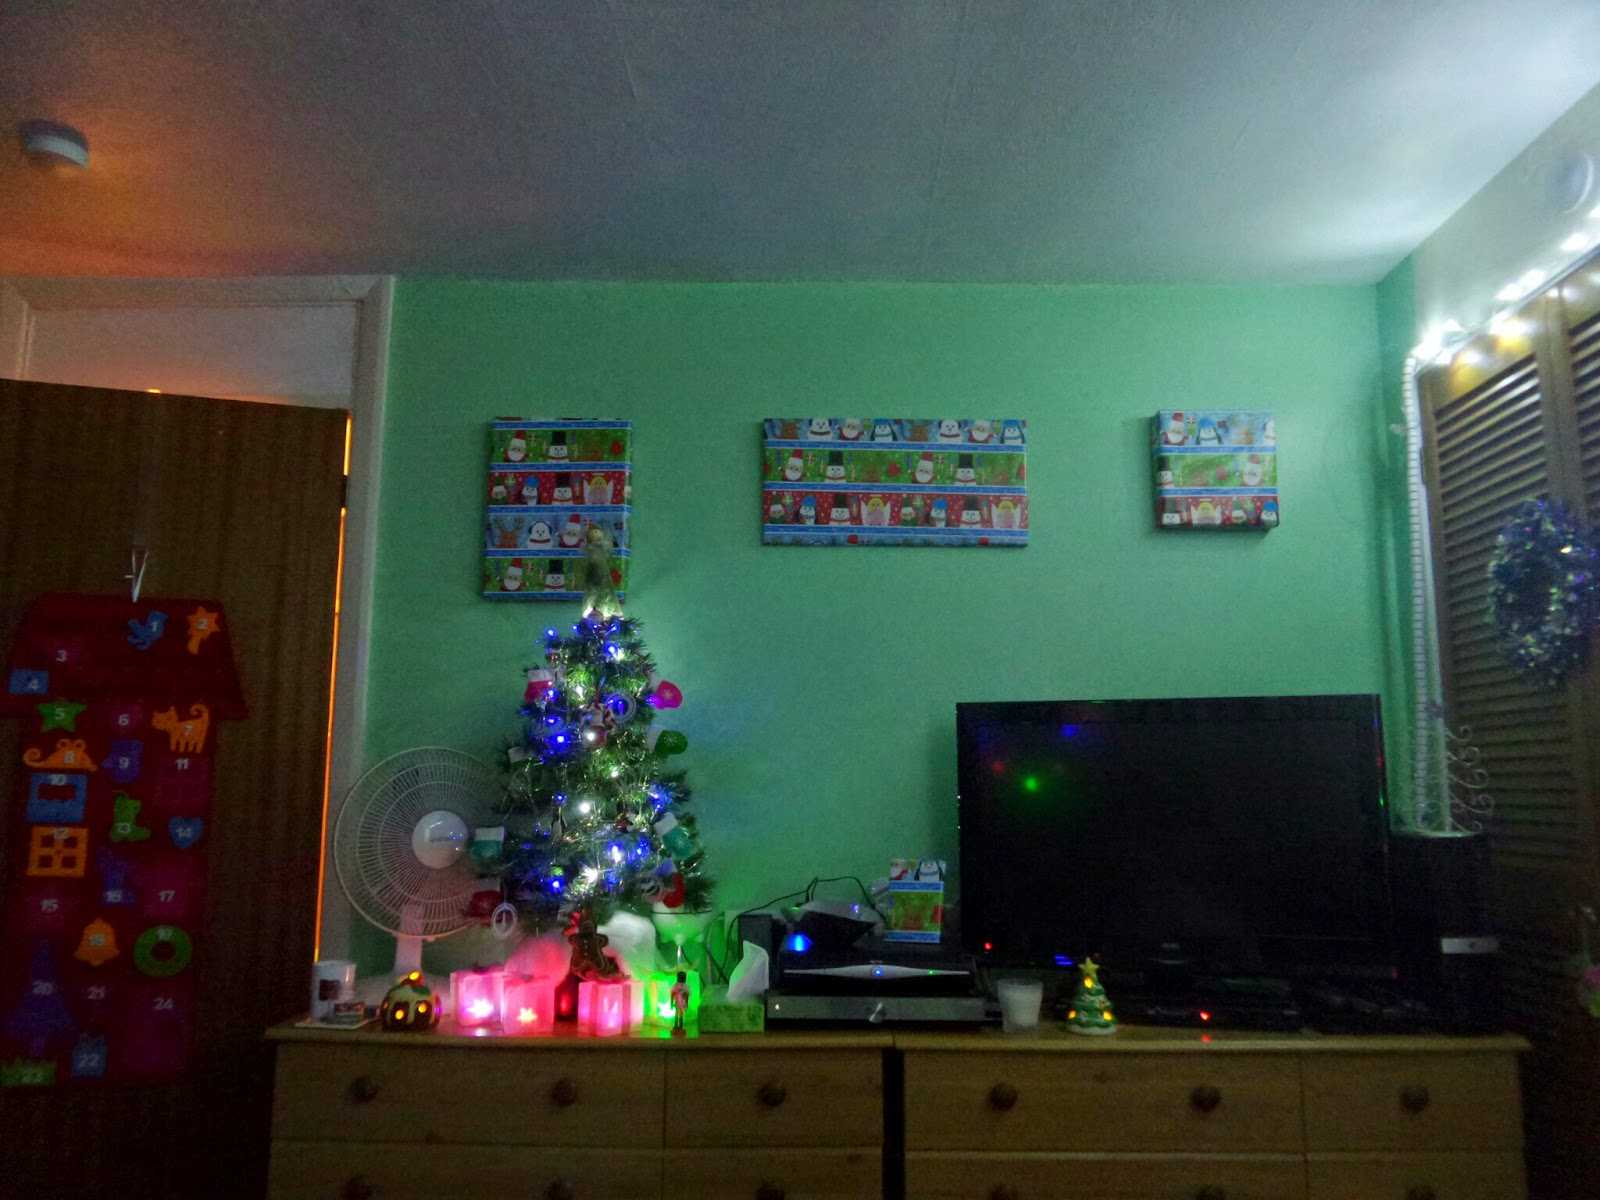 Christmas decorated units at the end of my bed. Complete with Christmas tree